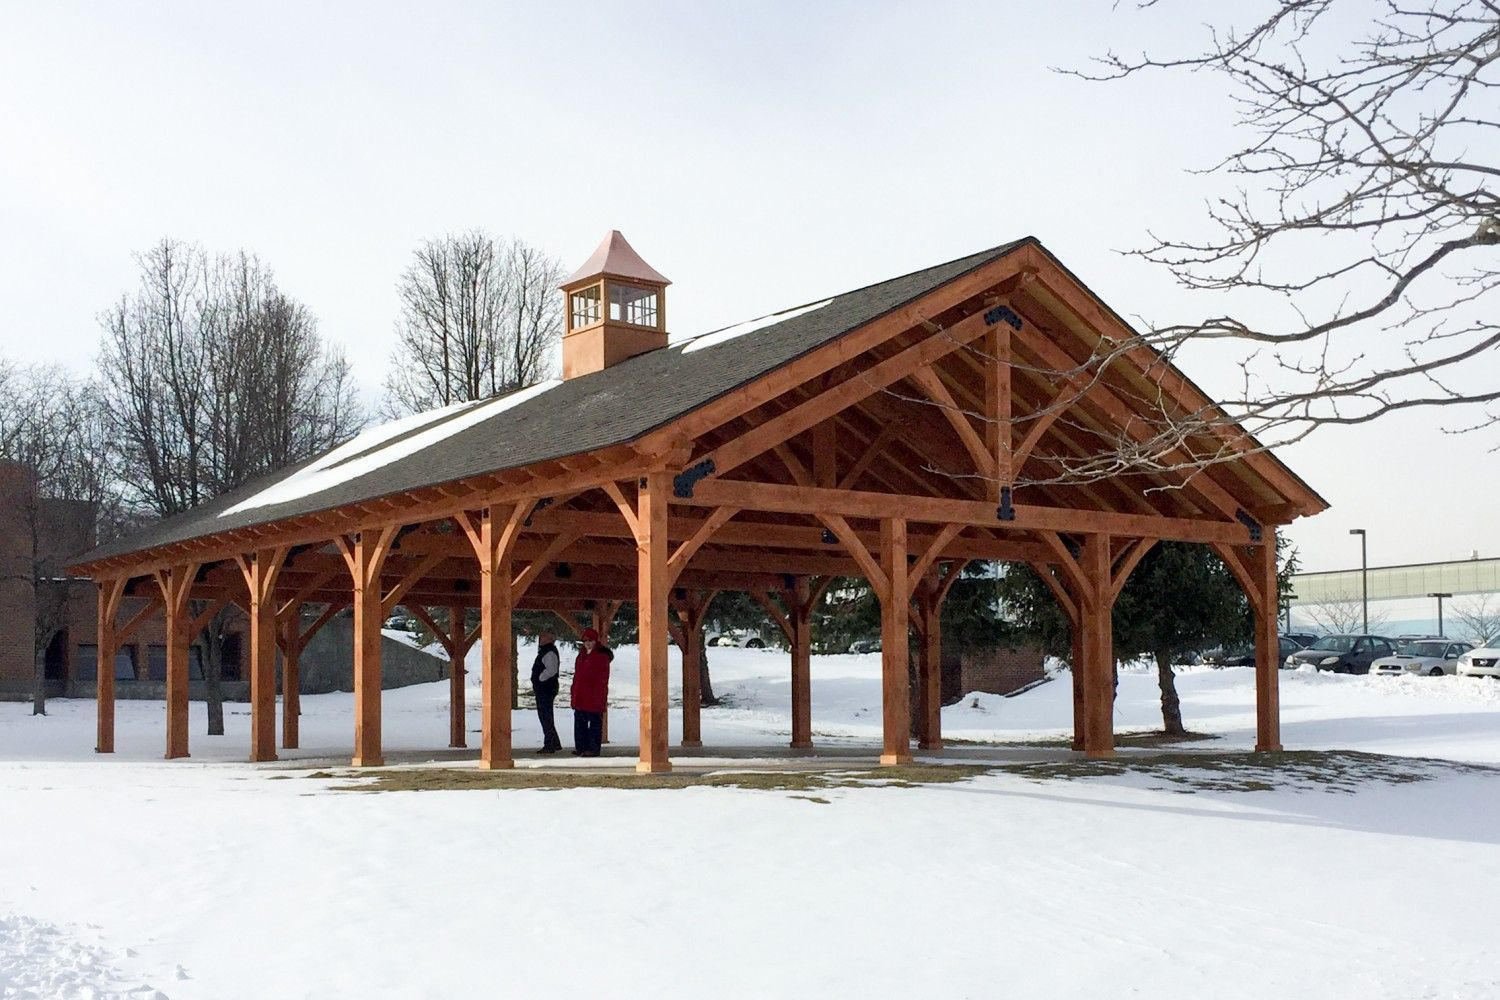 30' x 50' Timber Frame Pavilion at WCSU The Barn Yard